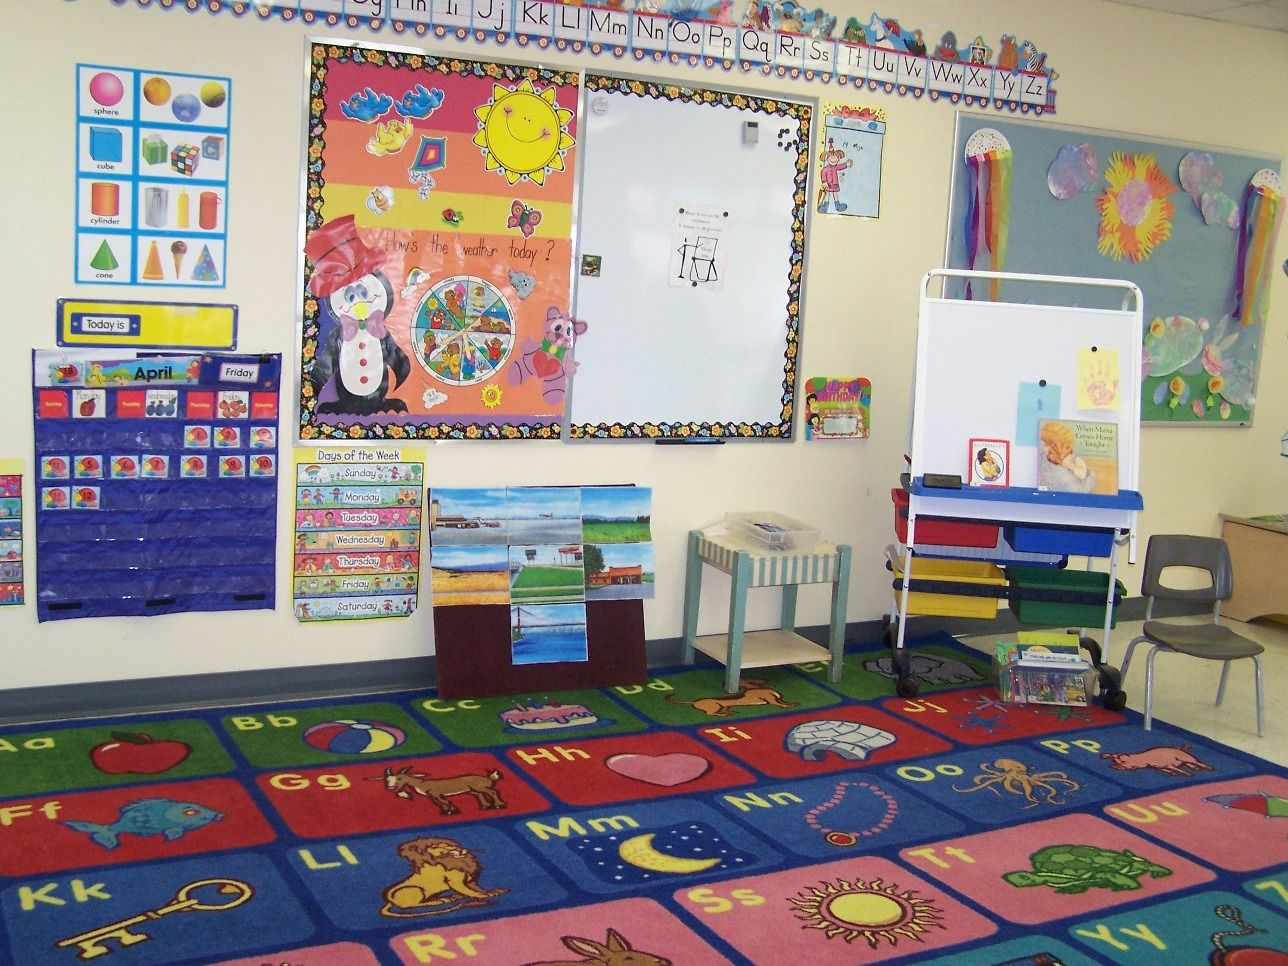 Classroom Design Layout For Preschool : My classroom will be full of learning numbers shapes